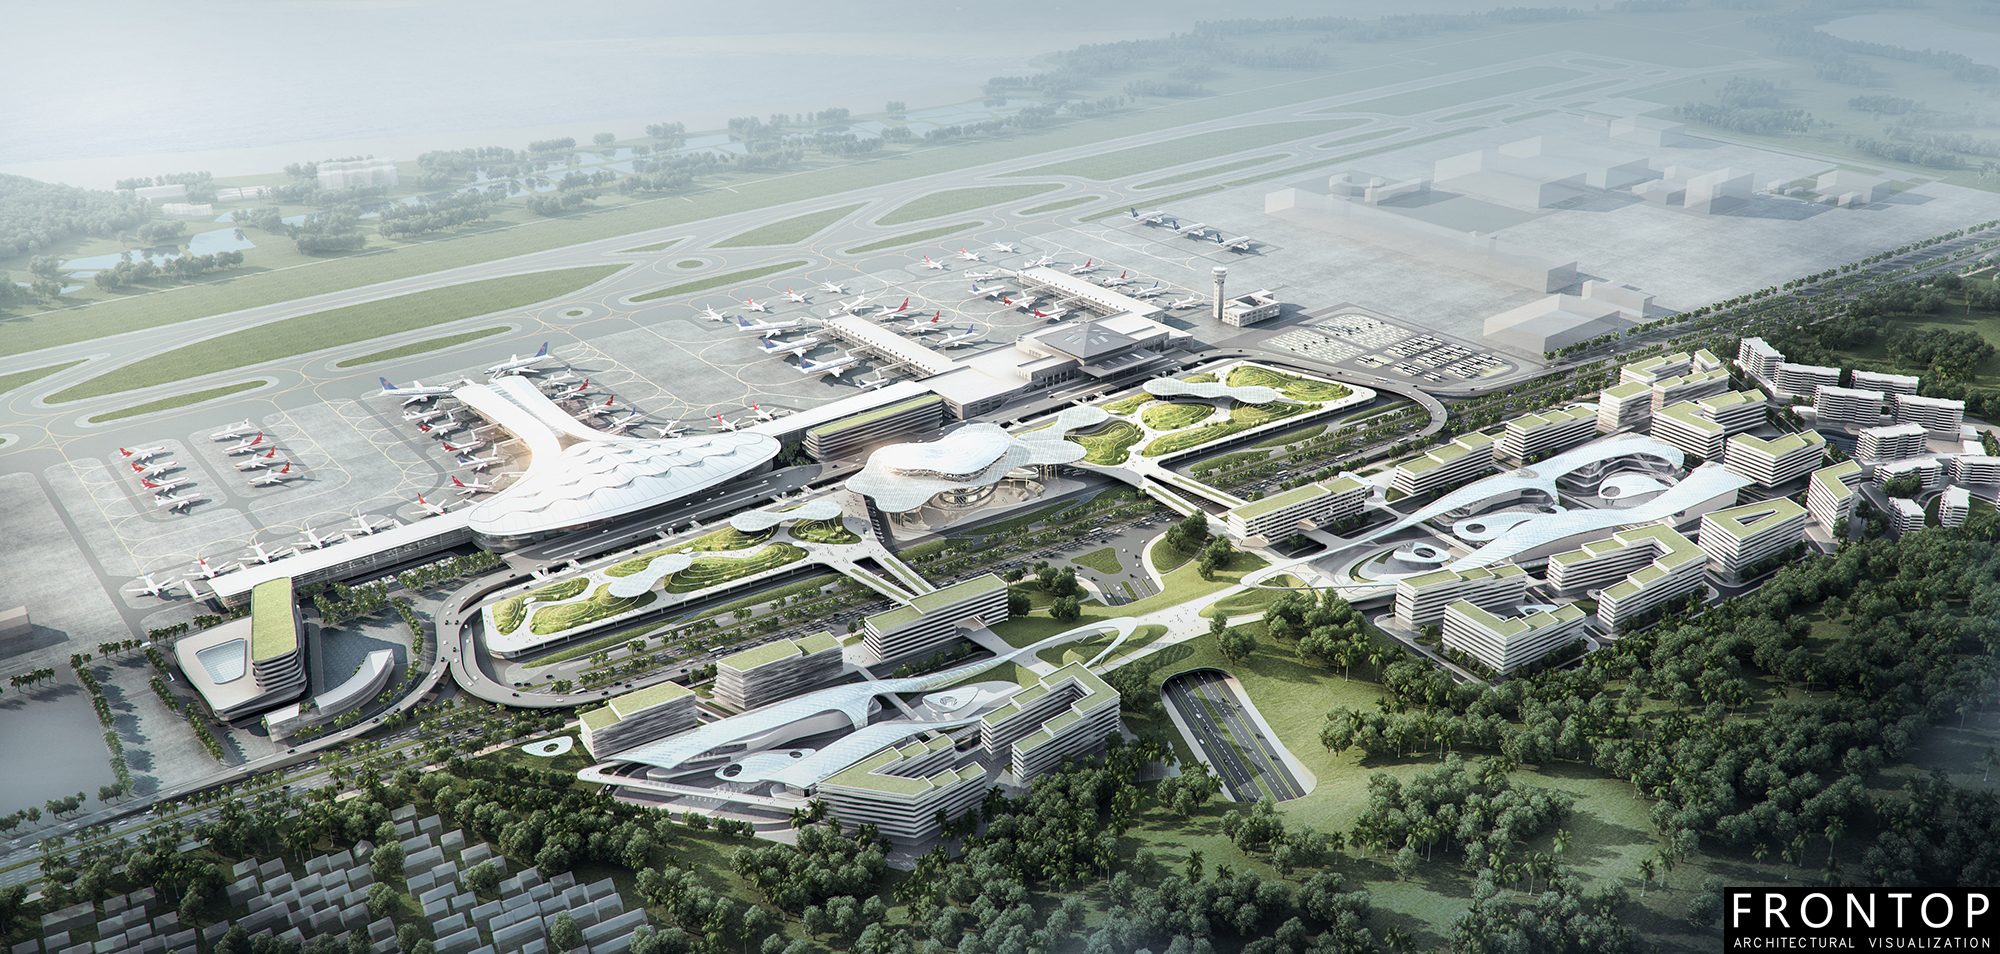 Fixed Competitive Price 3d Architecture Perspective - Zhuhai Airport Bidding – Frontop Featured Image